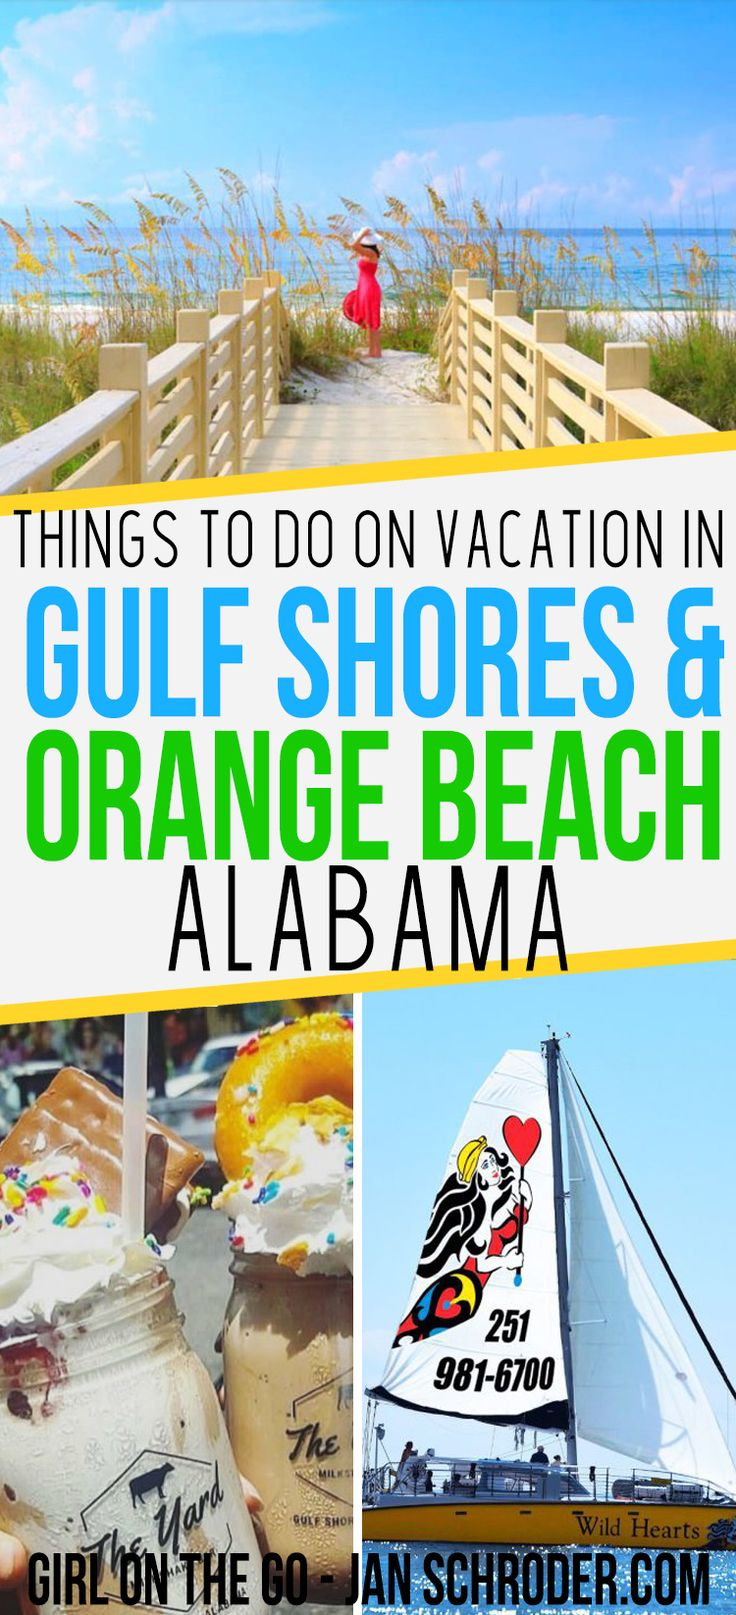 Alabama has so much to offer from delicious sweet treats to beaches and so much more. Click to start planning your vacation to the Gulf Shores and Orange Beach! #usa ***************************************** USA destinations | Gulf Shores Alabama | Gulf Shores vacation | Gulf Shores restaurants | Orange Beach Alabama | Orange Beach Alabama things to do in | Alabama travel | Alabama destinations